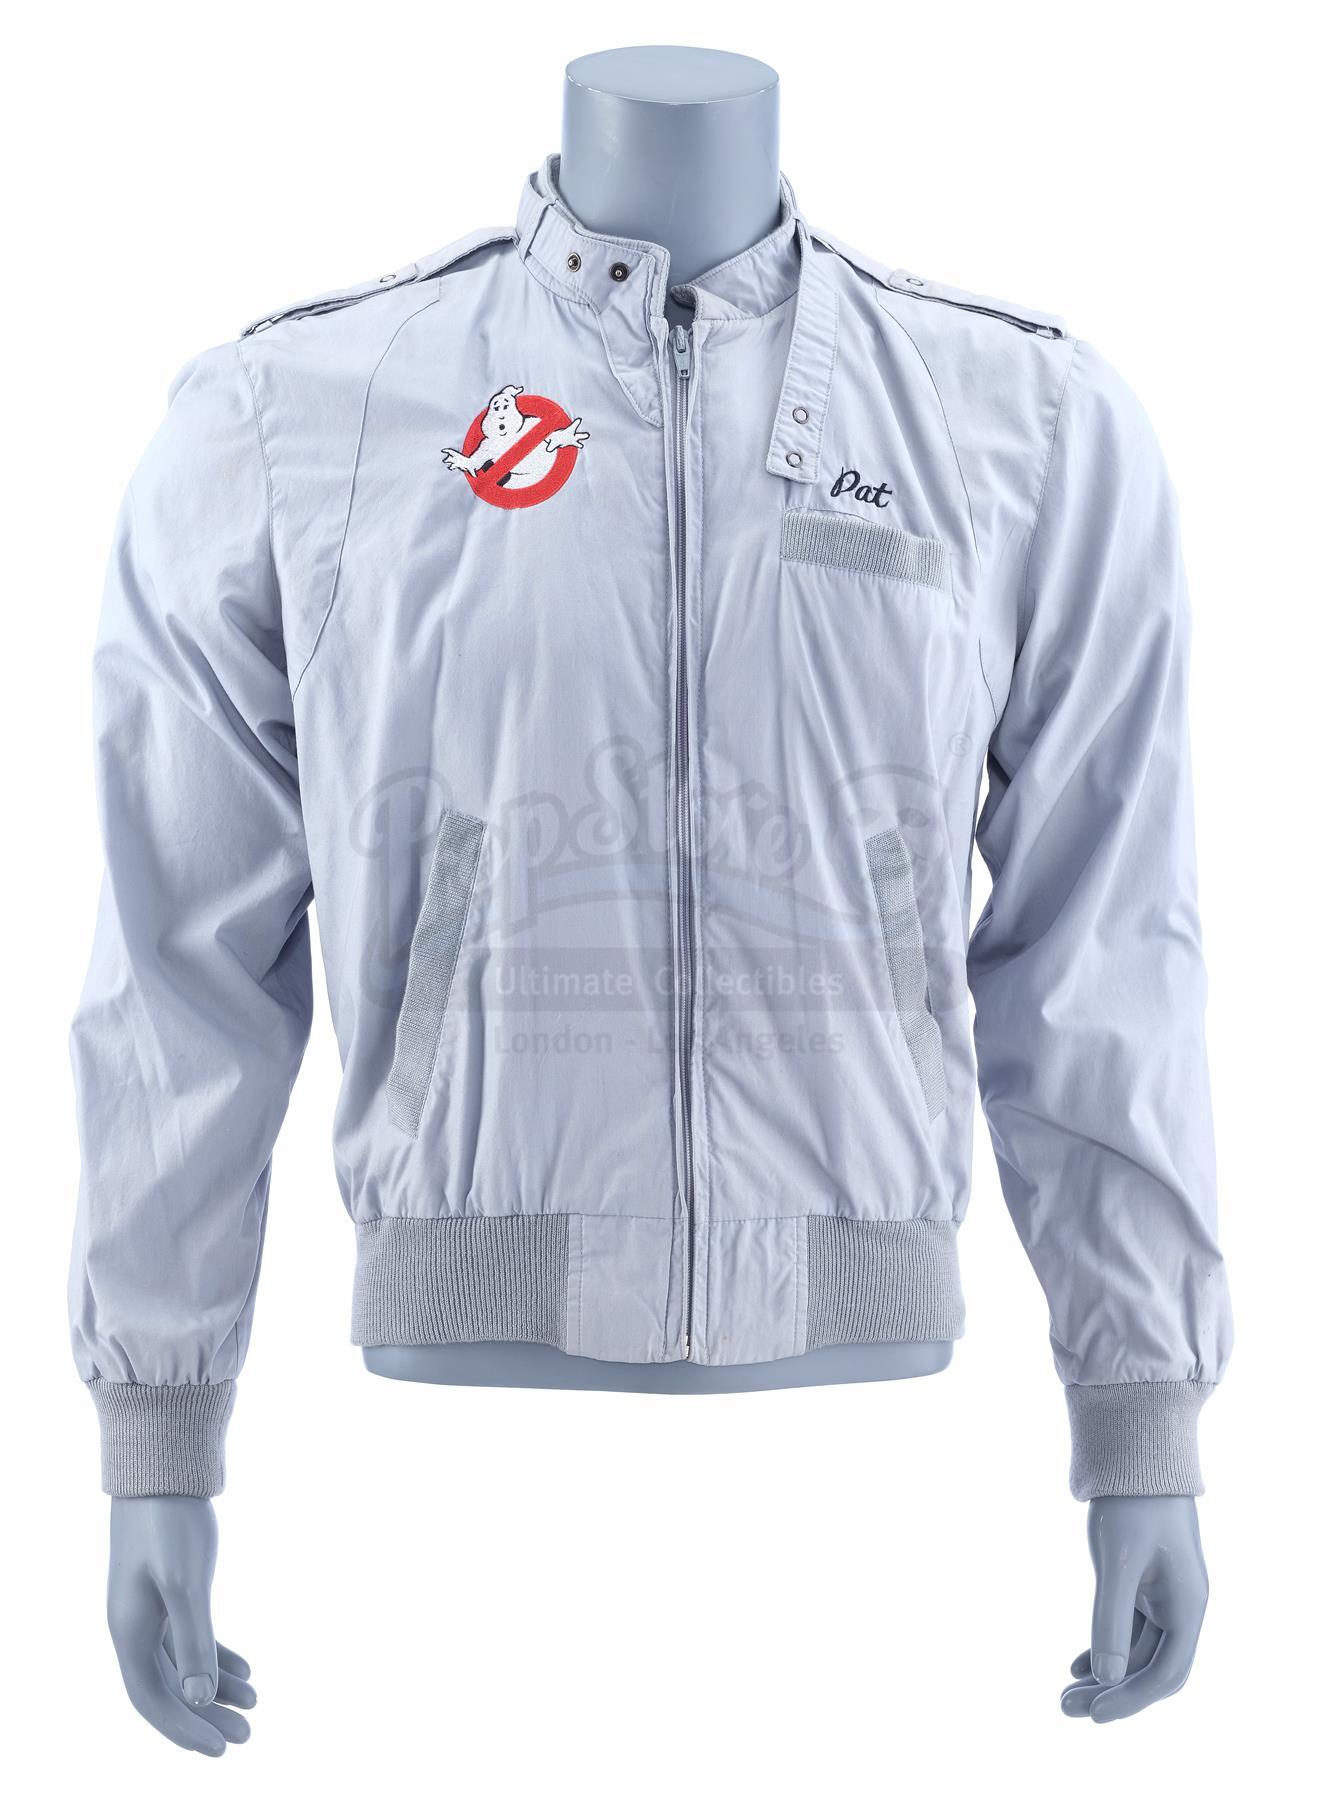 Lot # 690: GHOSTBUSTERS - Blue Crew Bomber Jacket